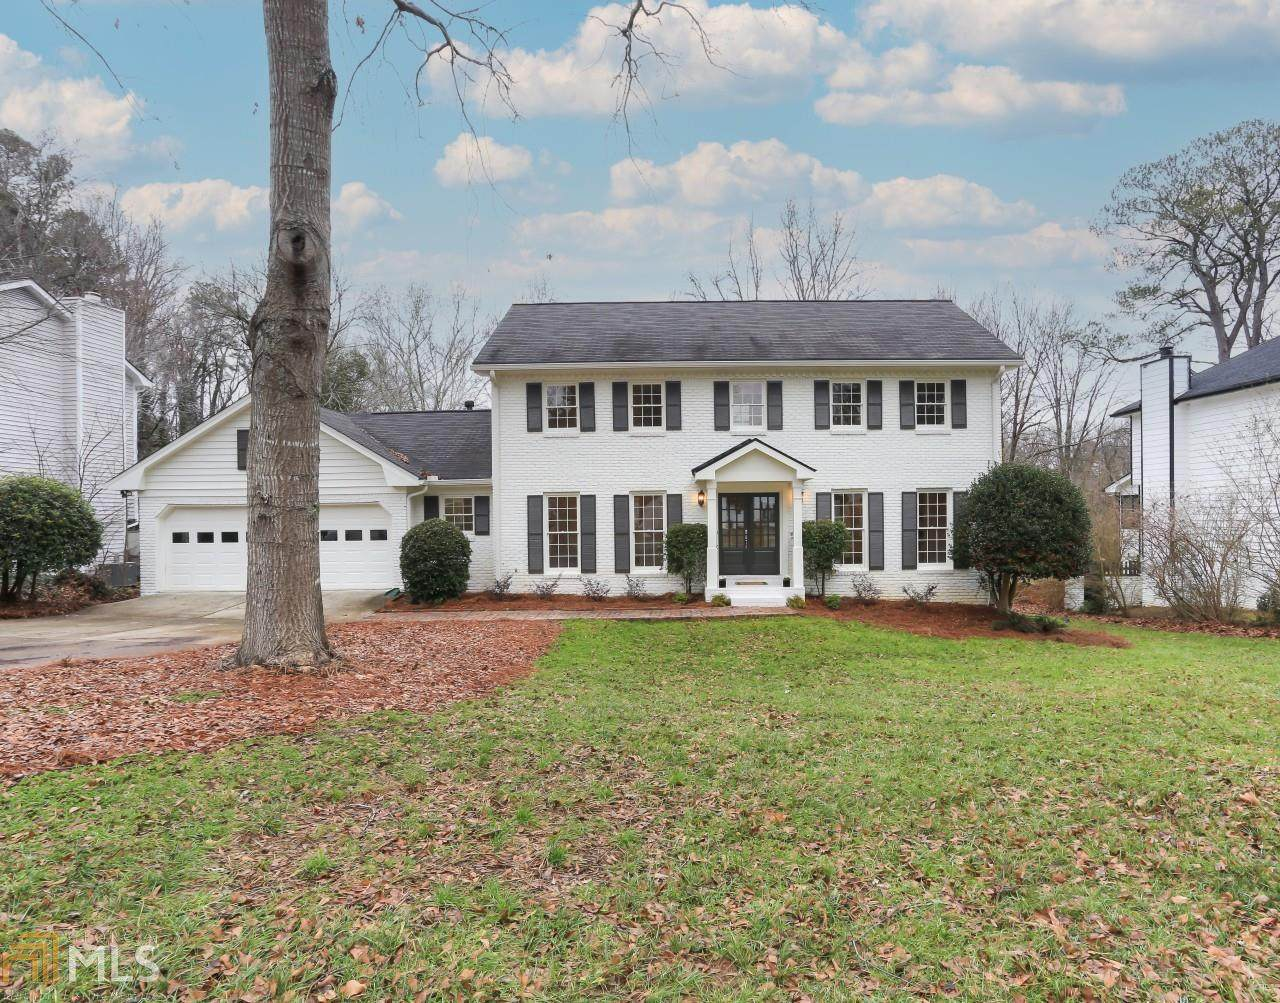 3255 Indian Hills Dr - Photo 1